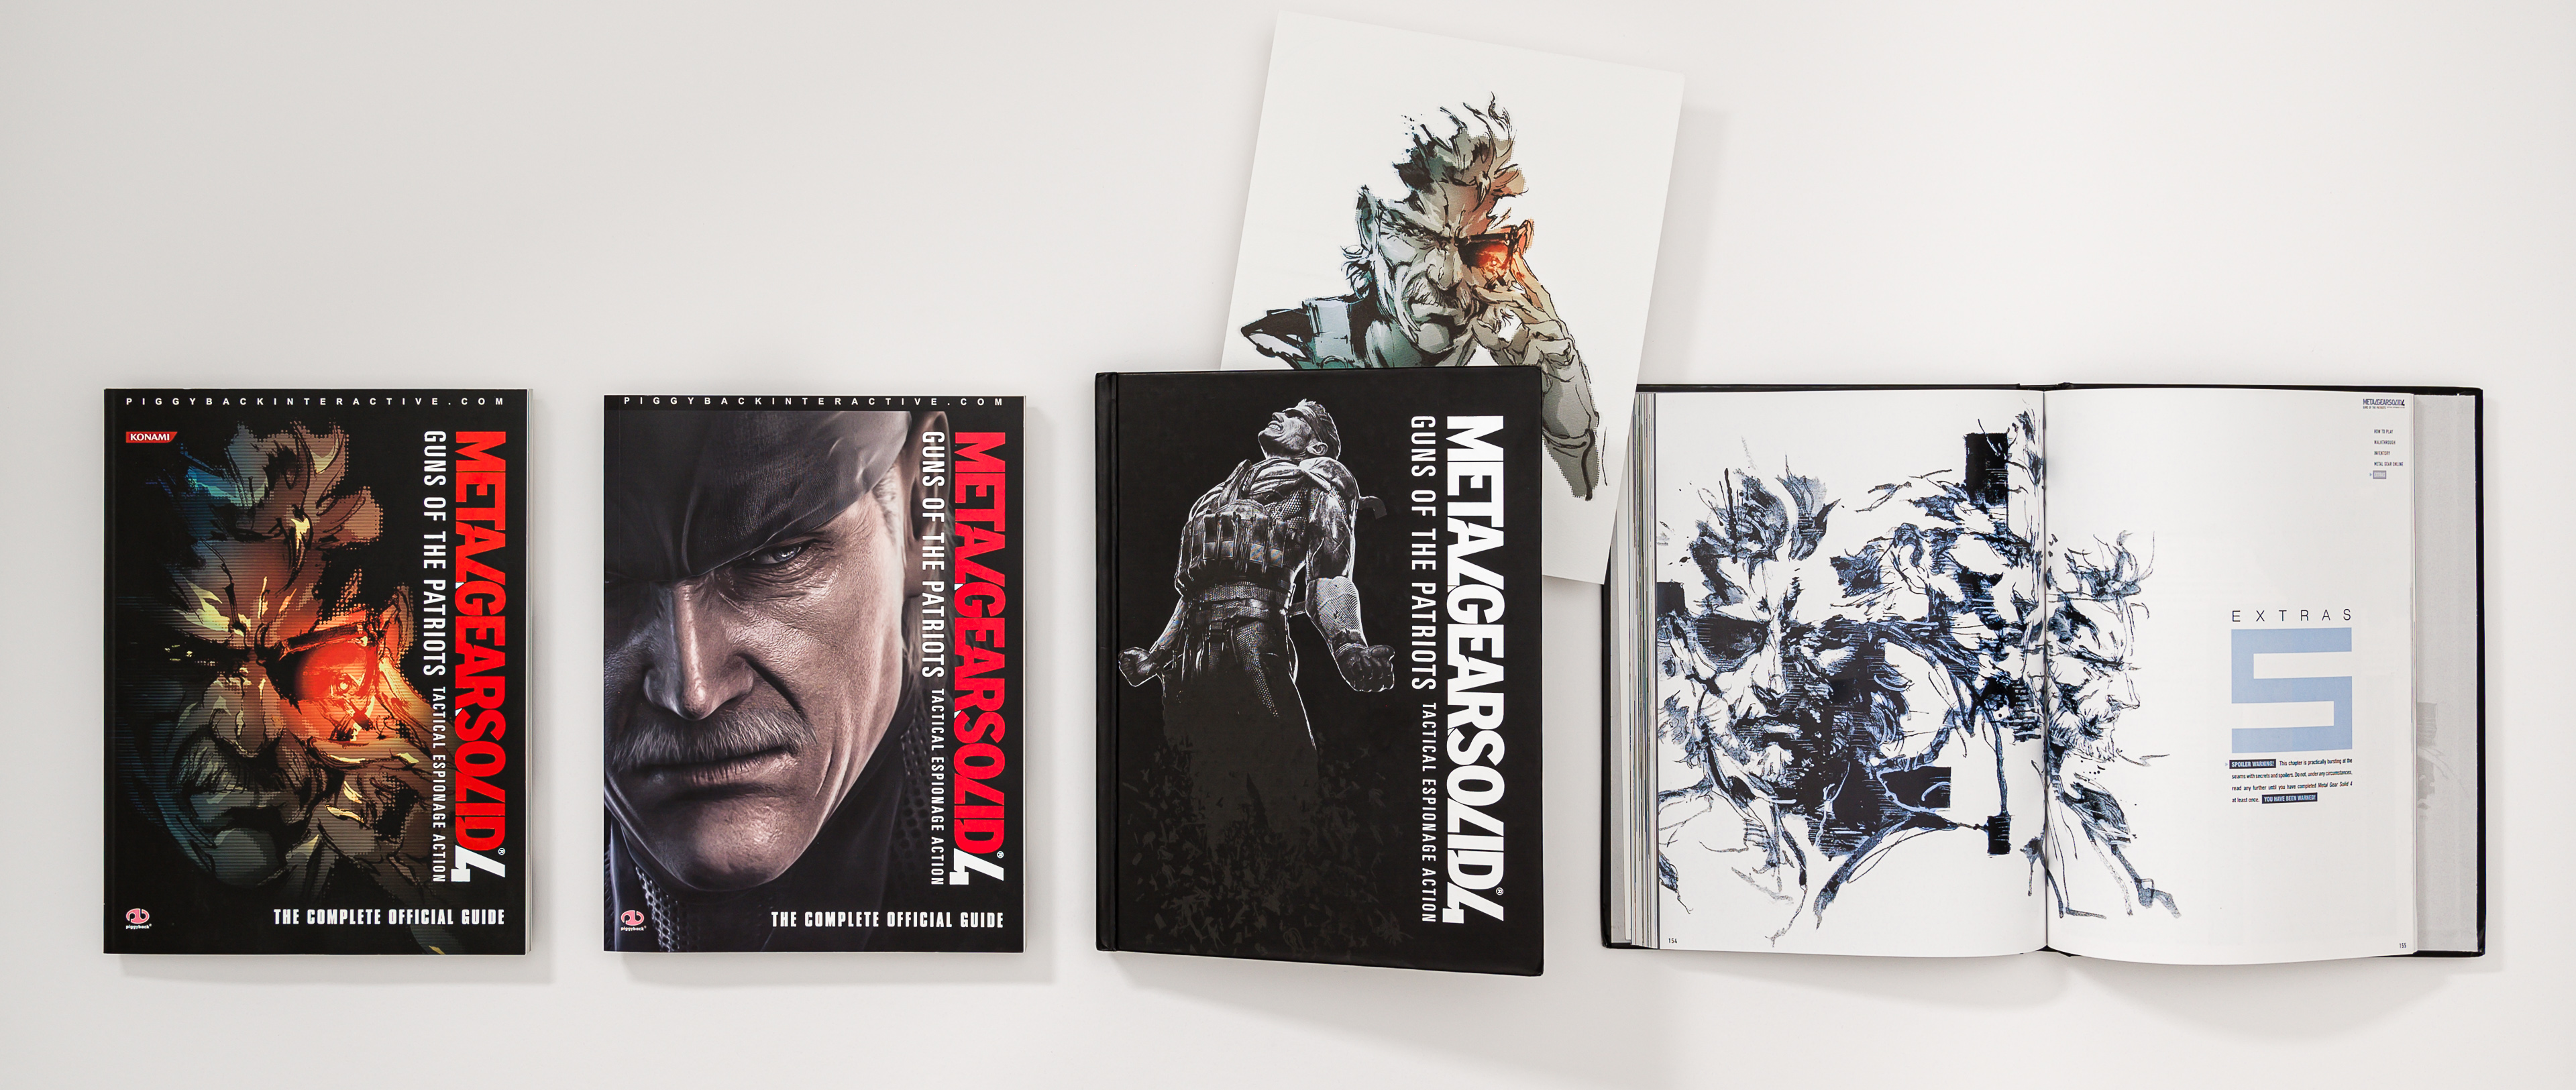 MGS4_UE_GUIDE-COLLAGE